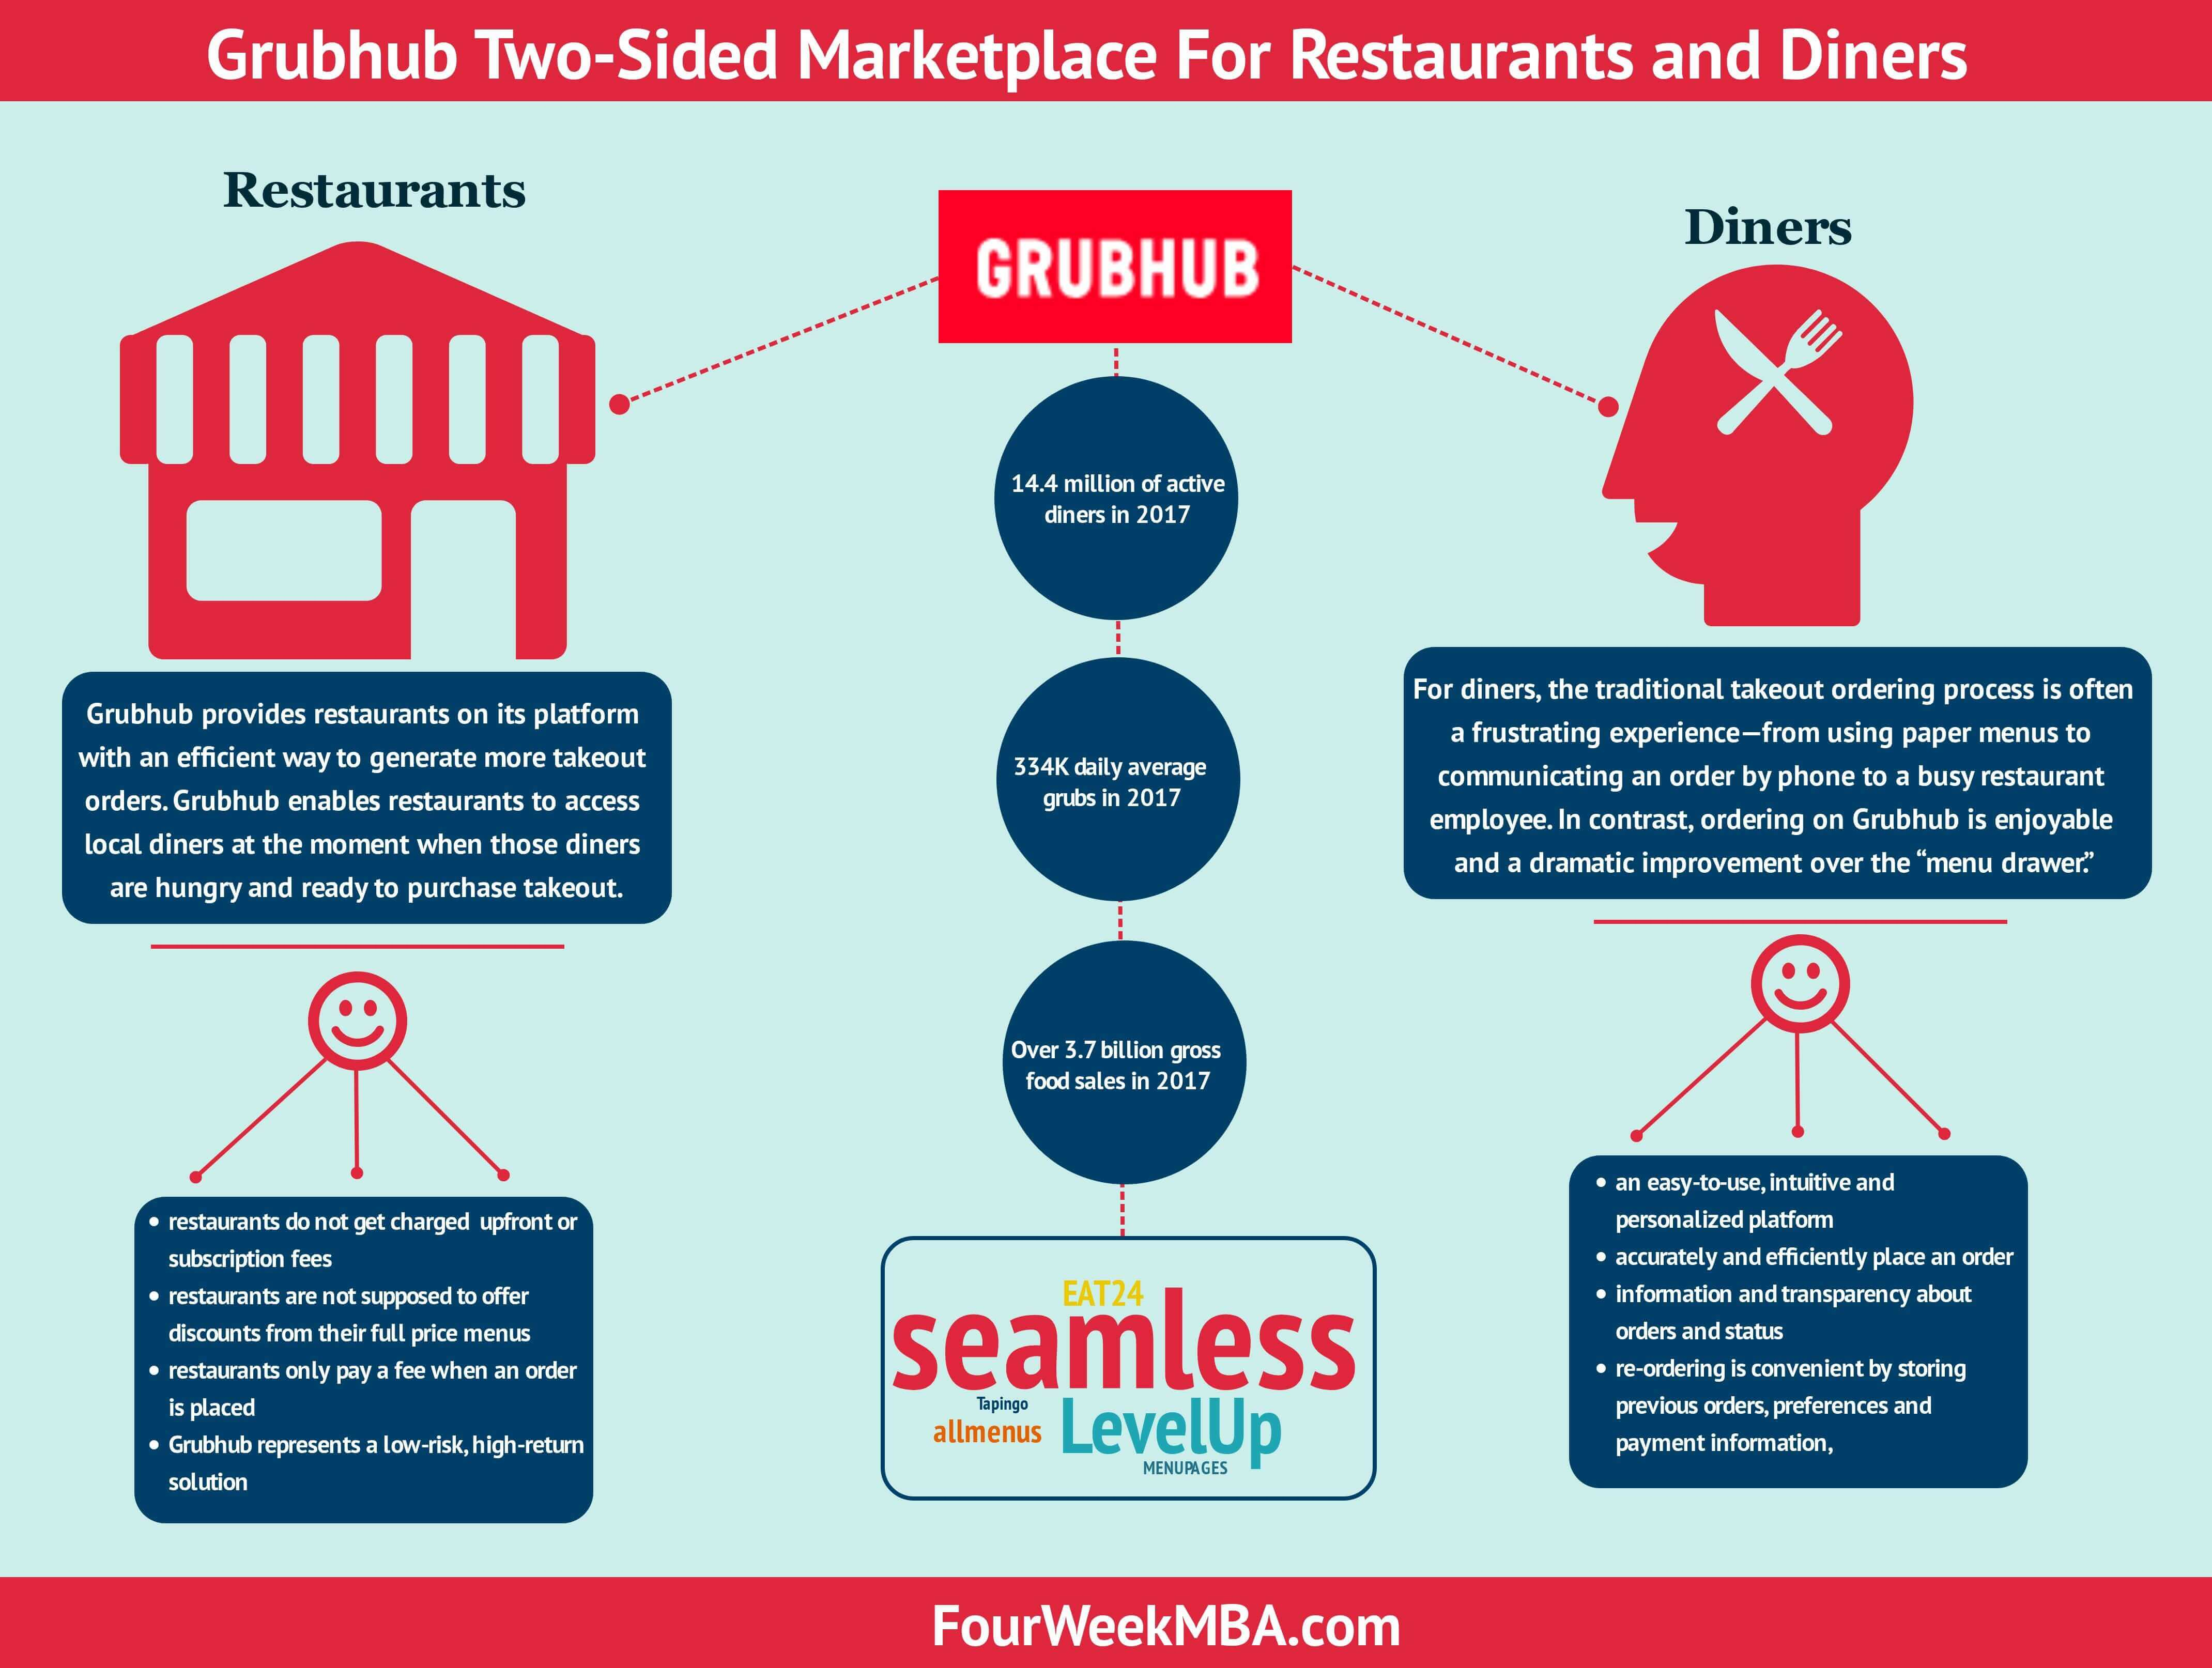 grubhub-business-model